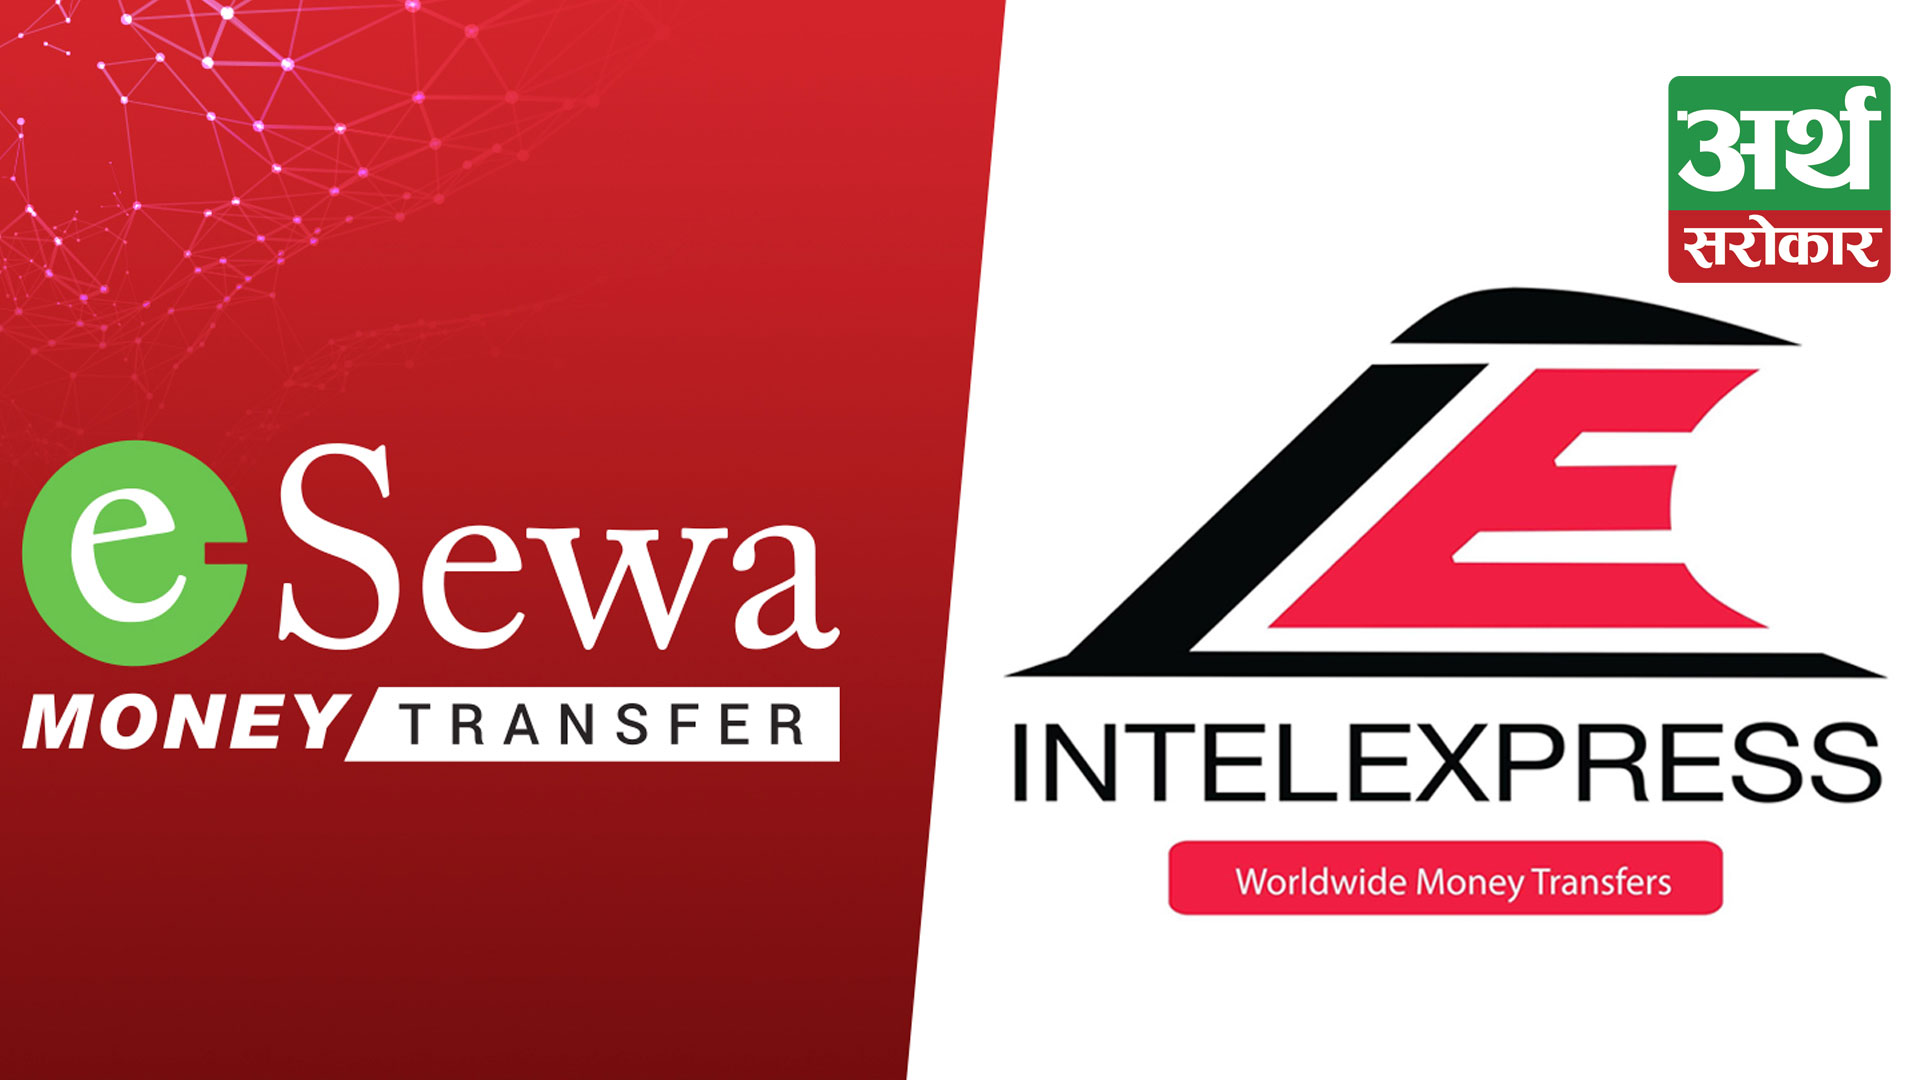 eSewa Money Transfer partners with INTELIEXPRESS Worldwide Money Transfer to offer remittance service from Europe to Nepal